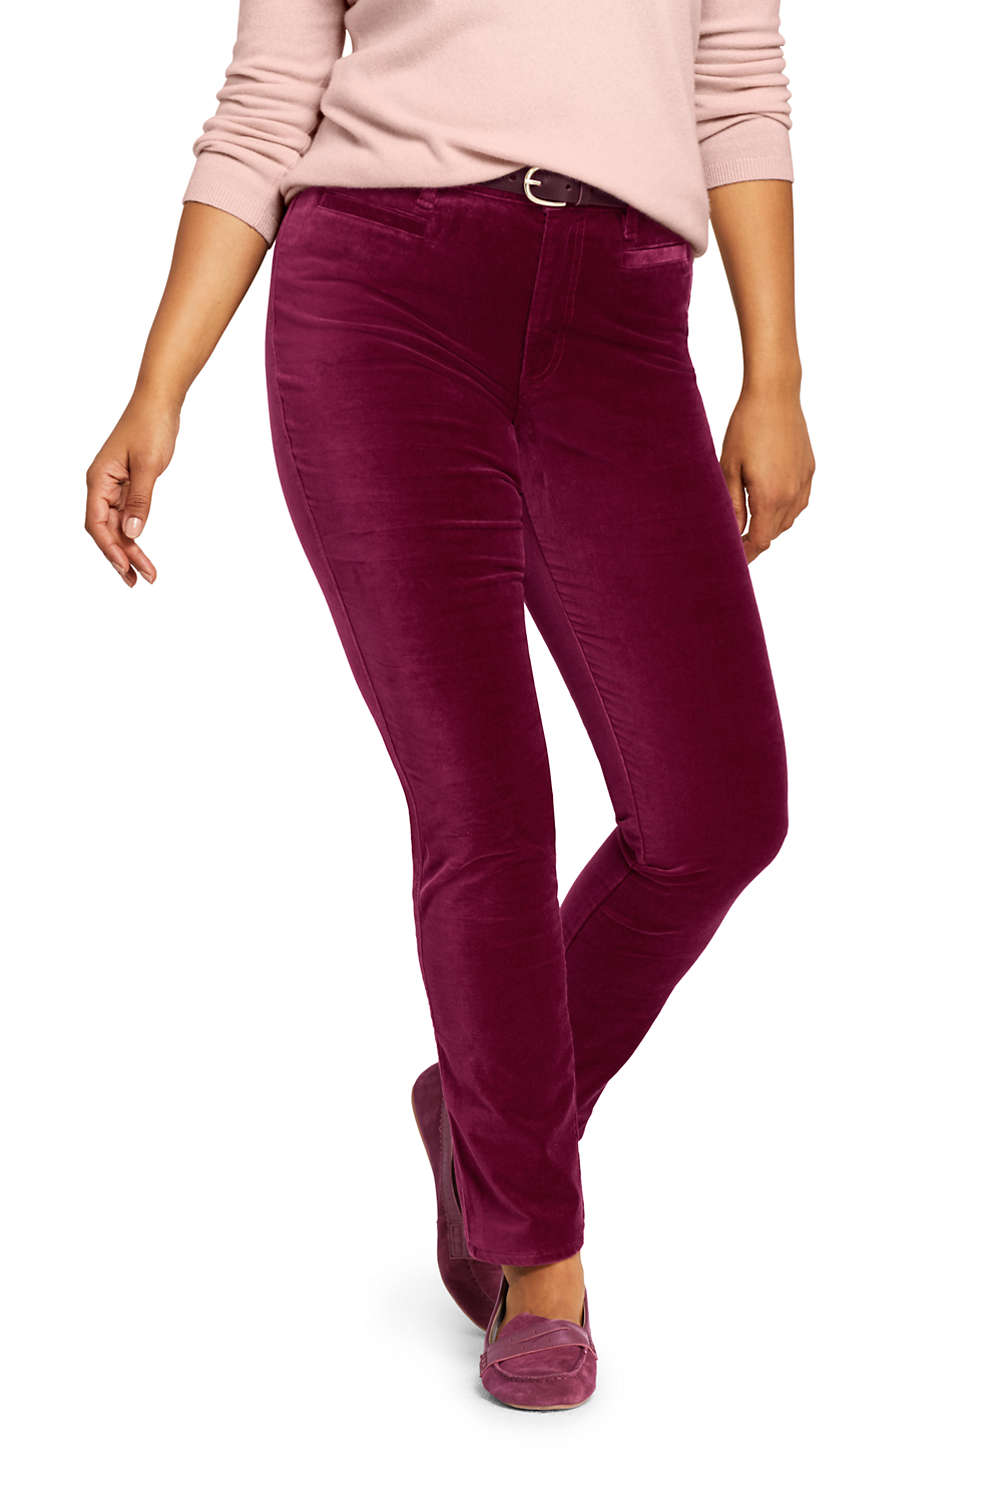 2b1e78d5c94 Women's Plus Size Mid Rise Velvet Slim Leg Pants from Lands' End